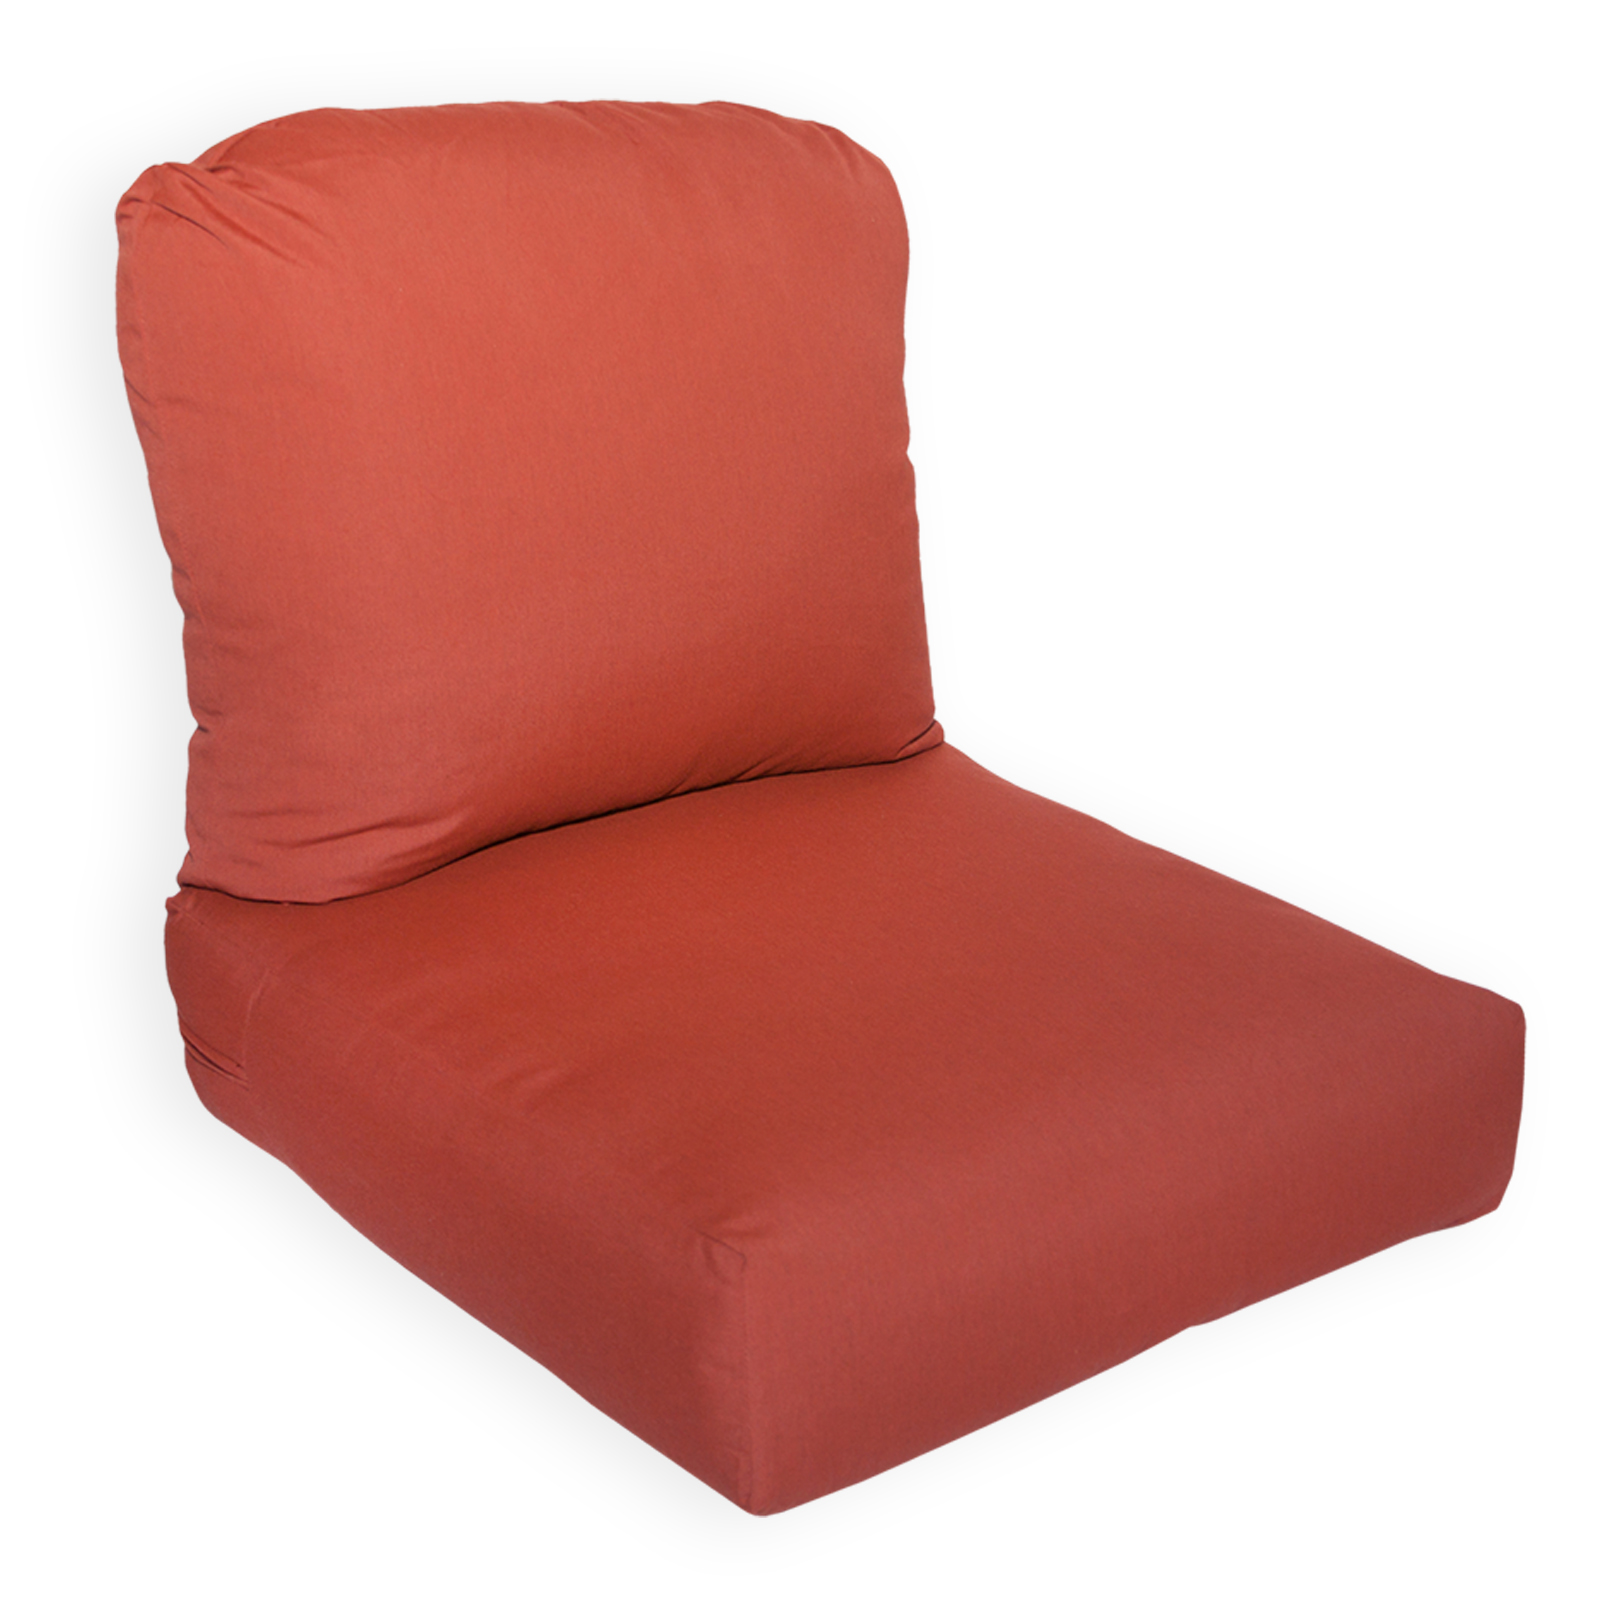 sunbrella chair cushion ergonomic quebec deluxe deep seating available in